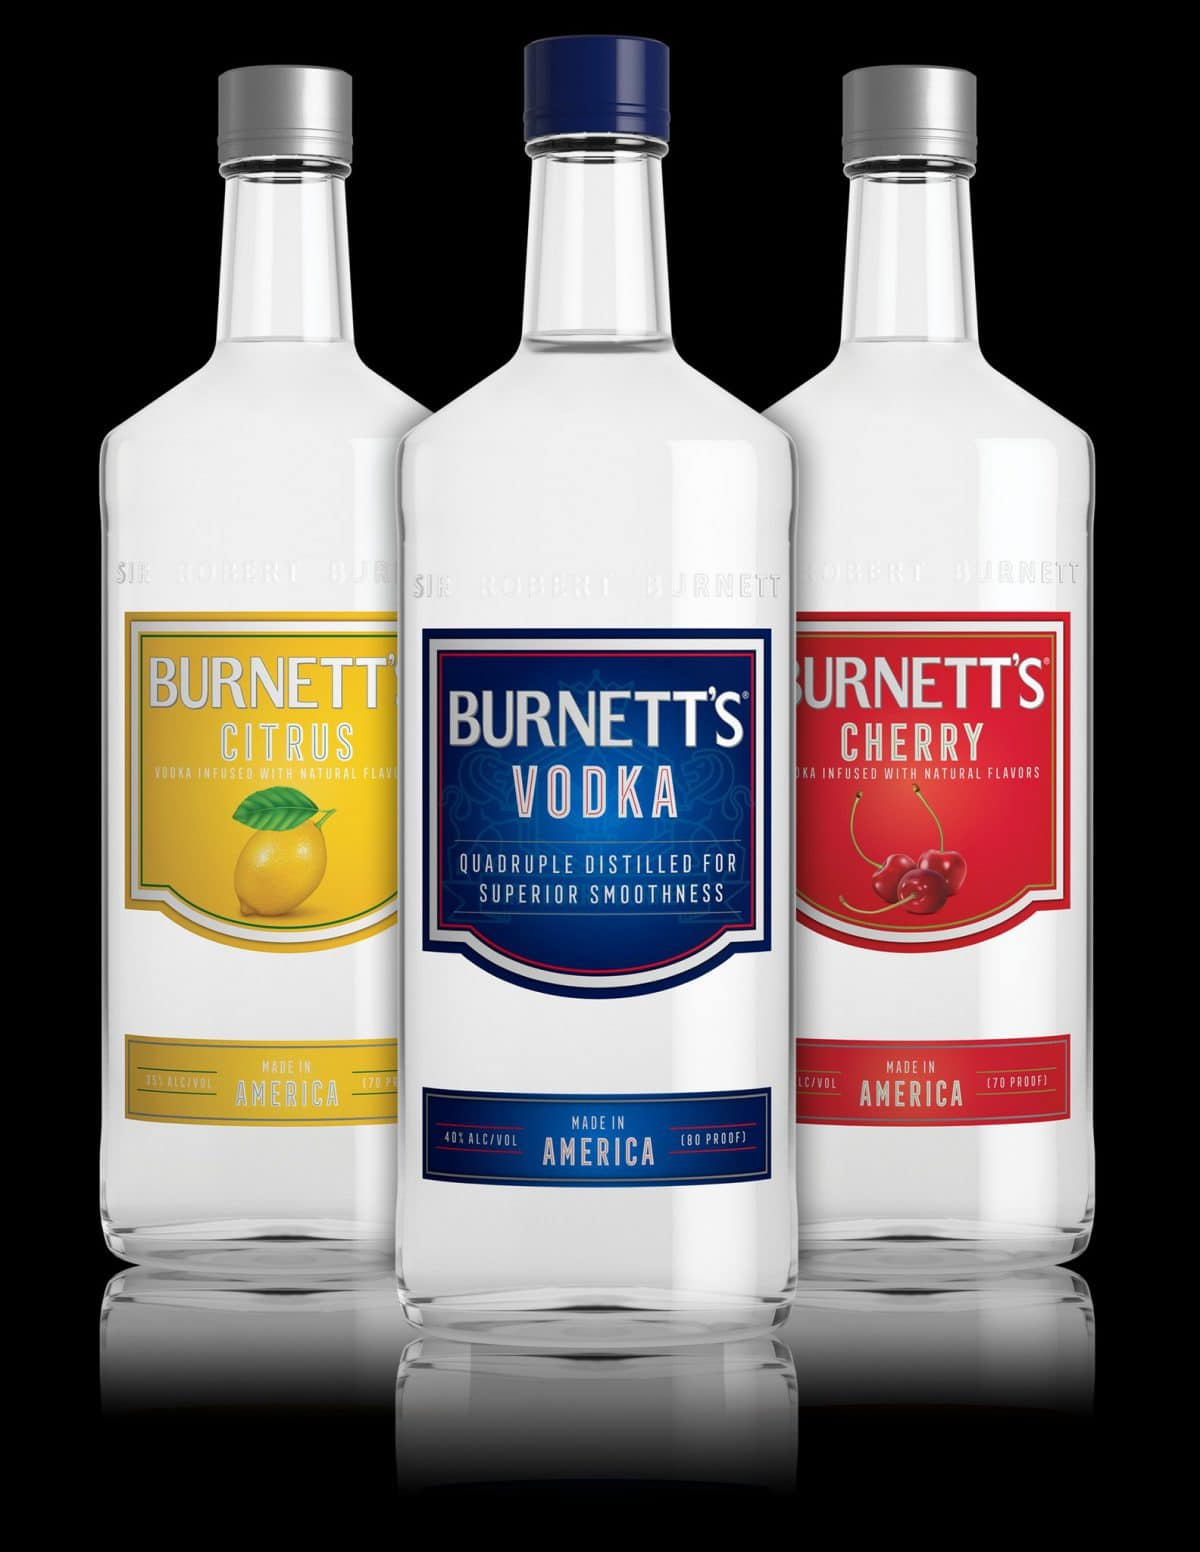 Burnett's Vodka Prices